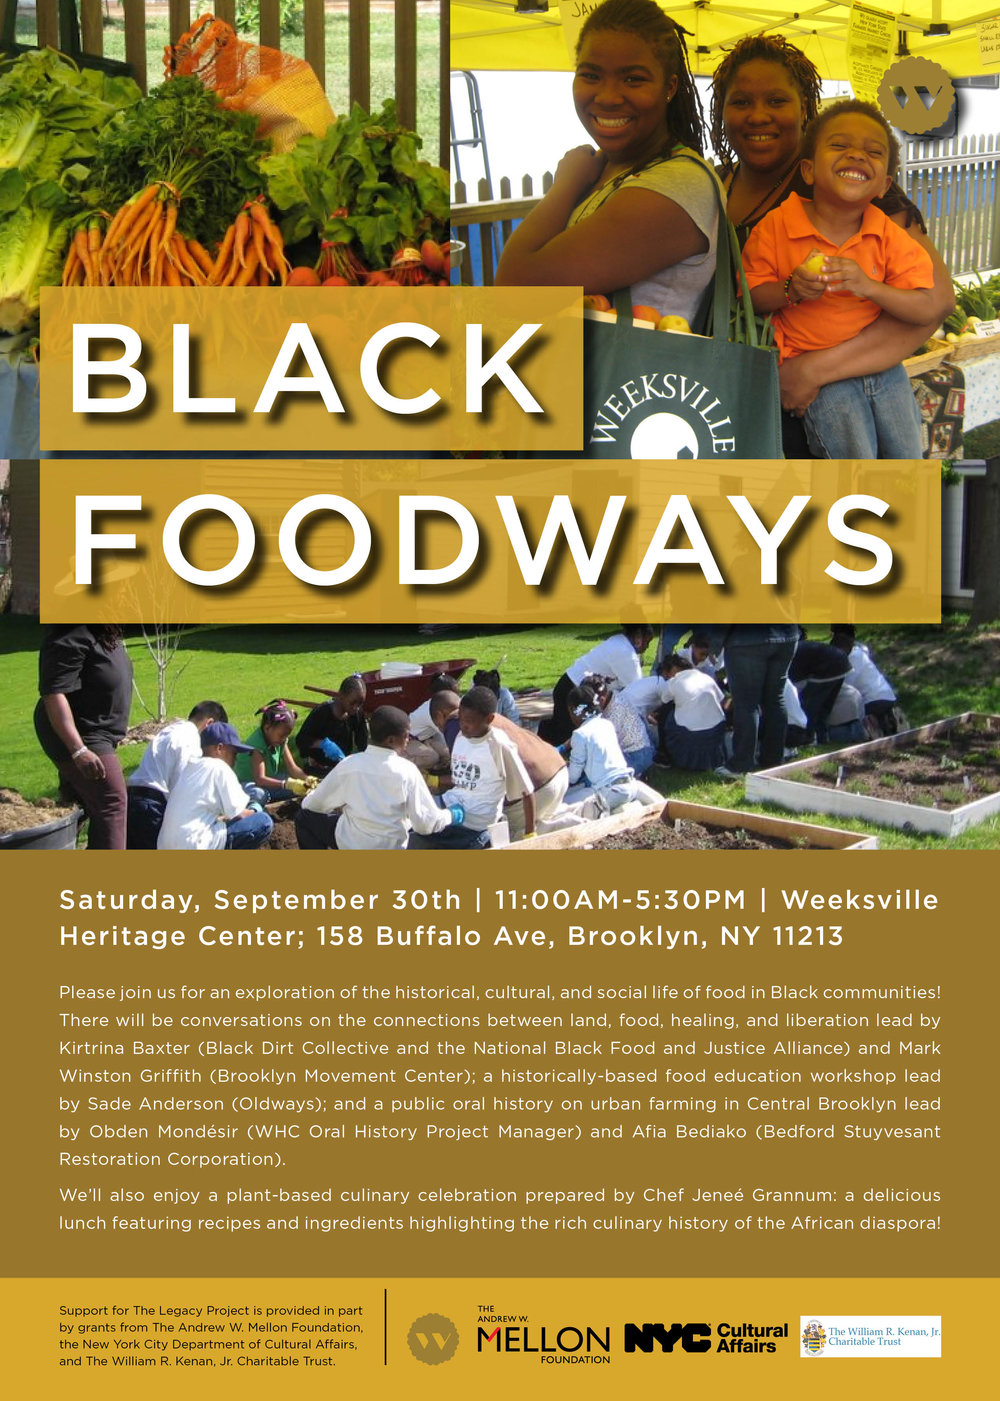 - Whether in celebration, mourning, or fellowship, gathering to break bread has always been integral to the Black experience. The Legacy Project continues with